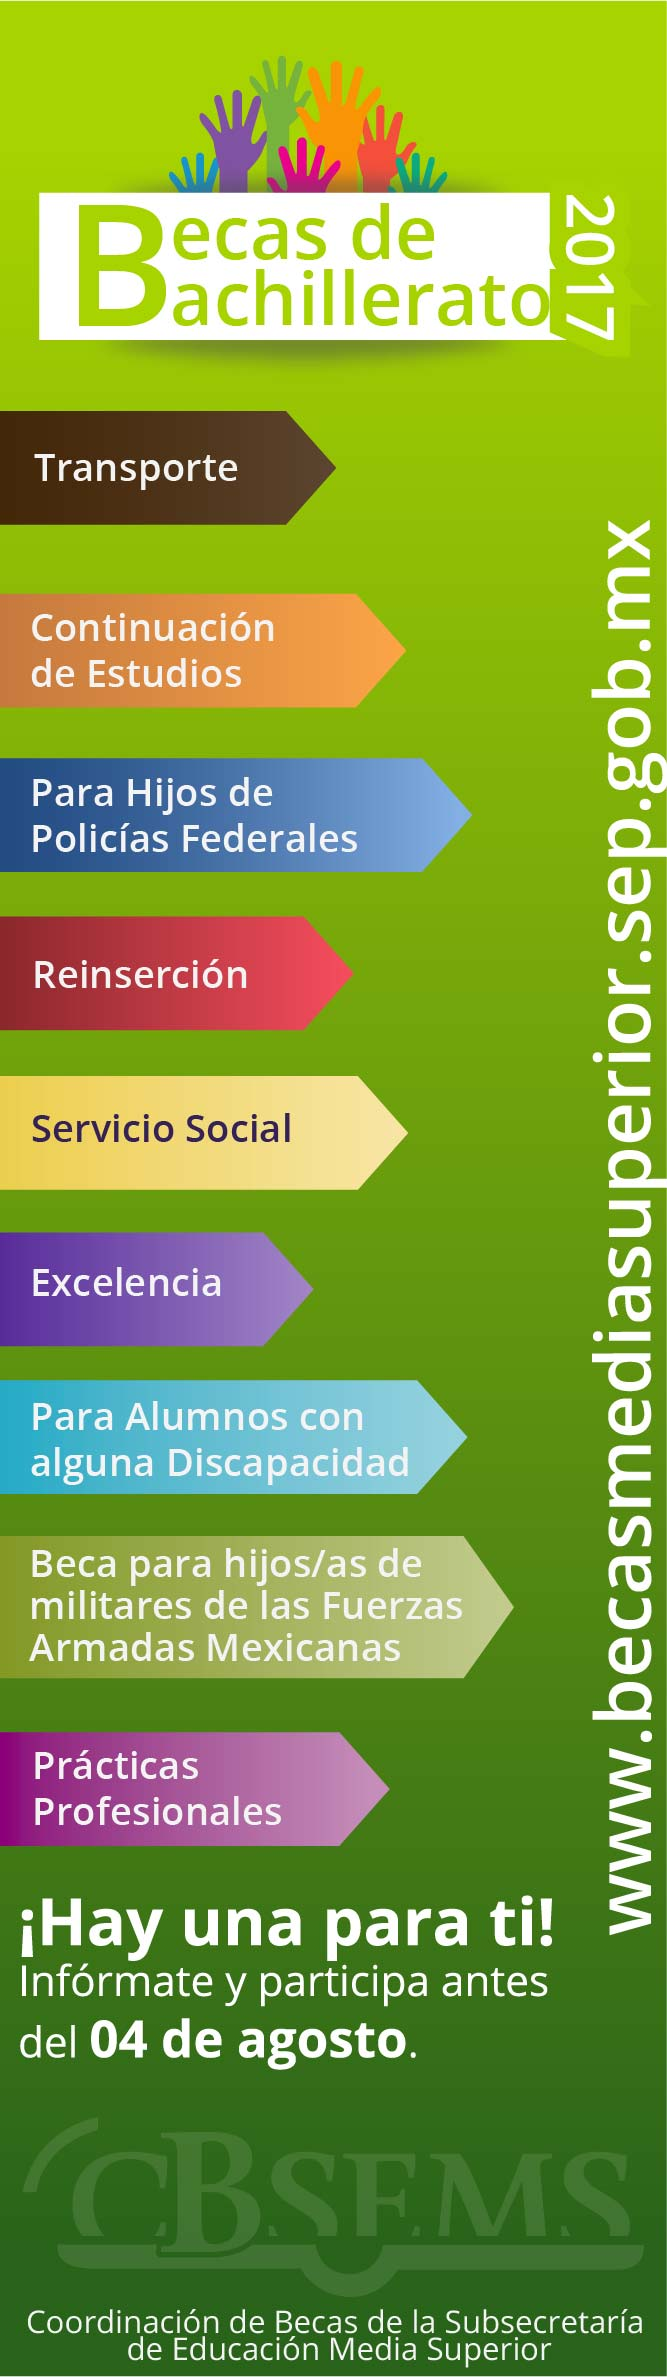 Banners_Becas_2017_HUPT-04